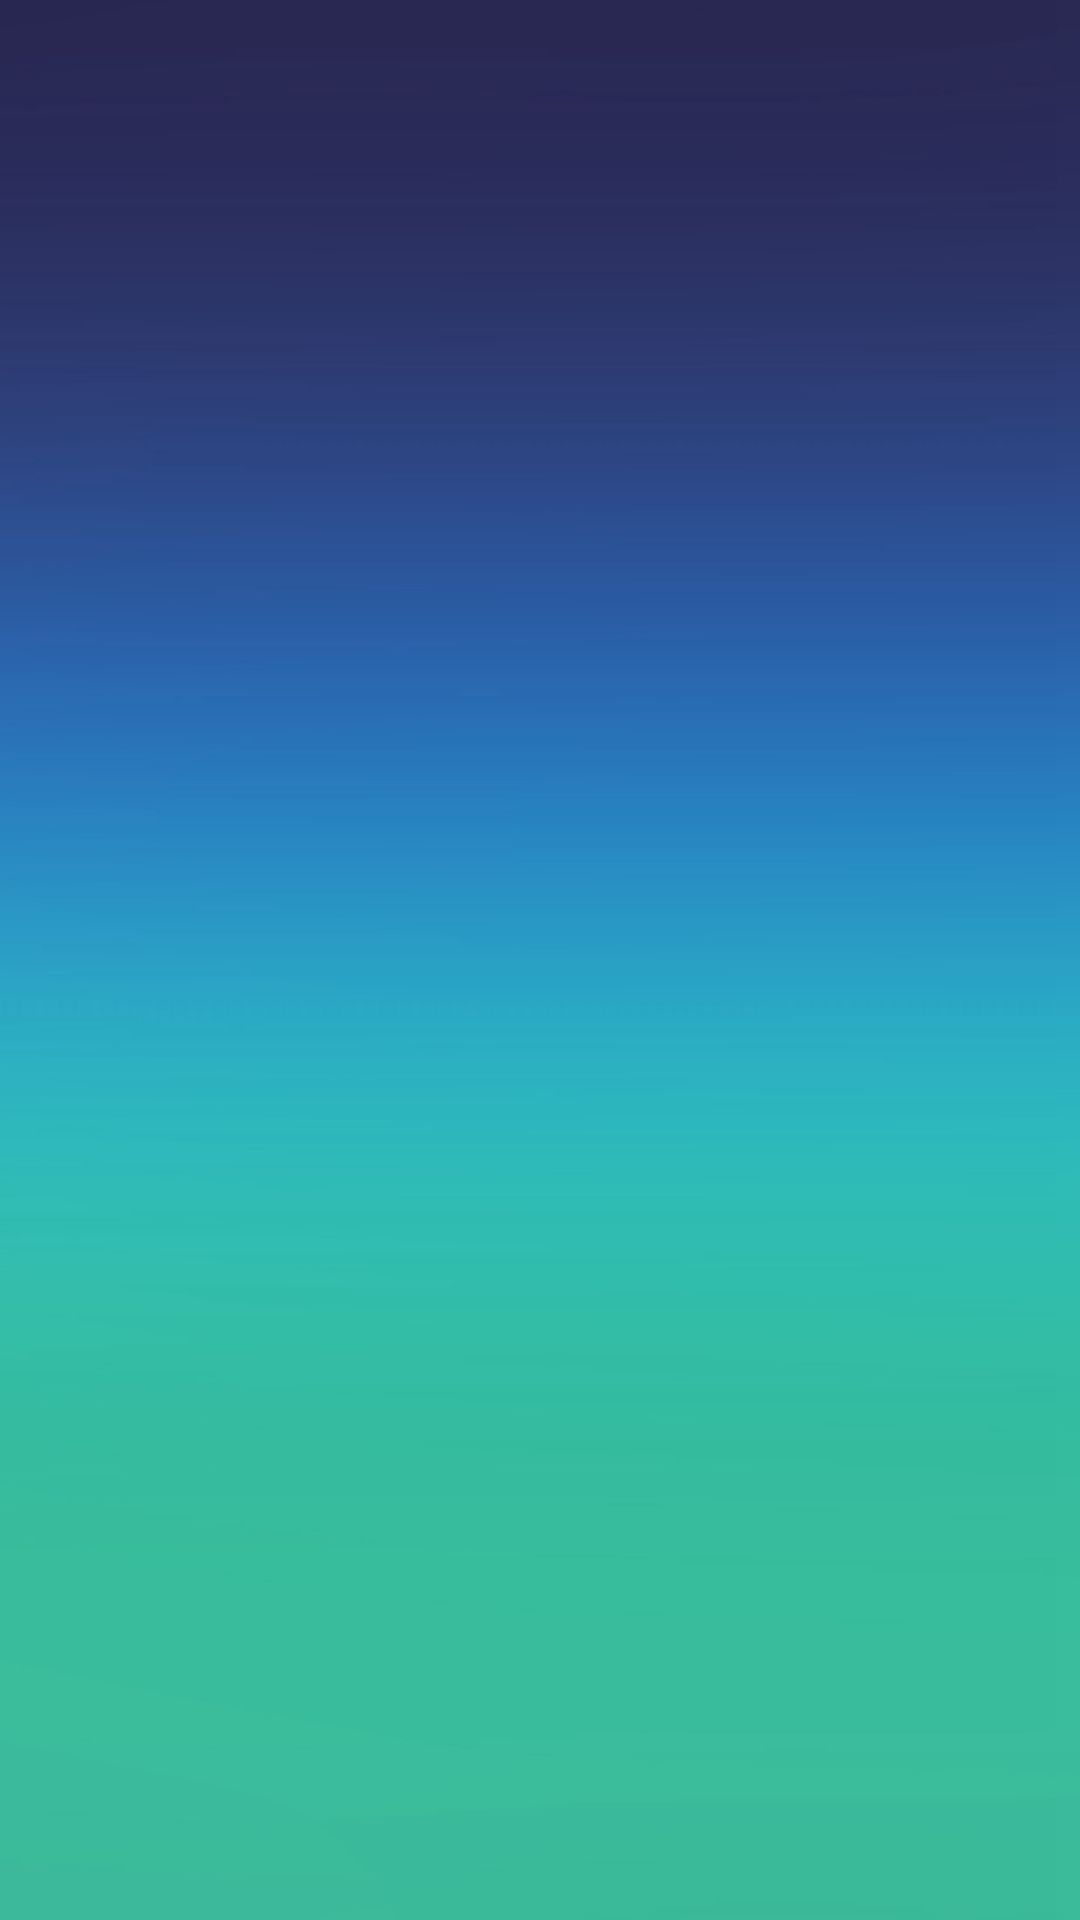 Nintendo Green Blue Gradation Blur Iphone 6 Wallpaper Download Iphone Wallpapers Ipad Wallpapers One Stop Dow Sky Color Android Wallpaper Colorful Wallpaper